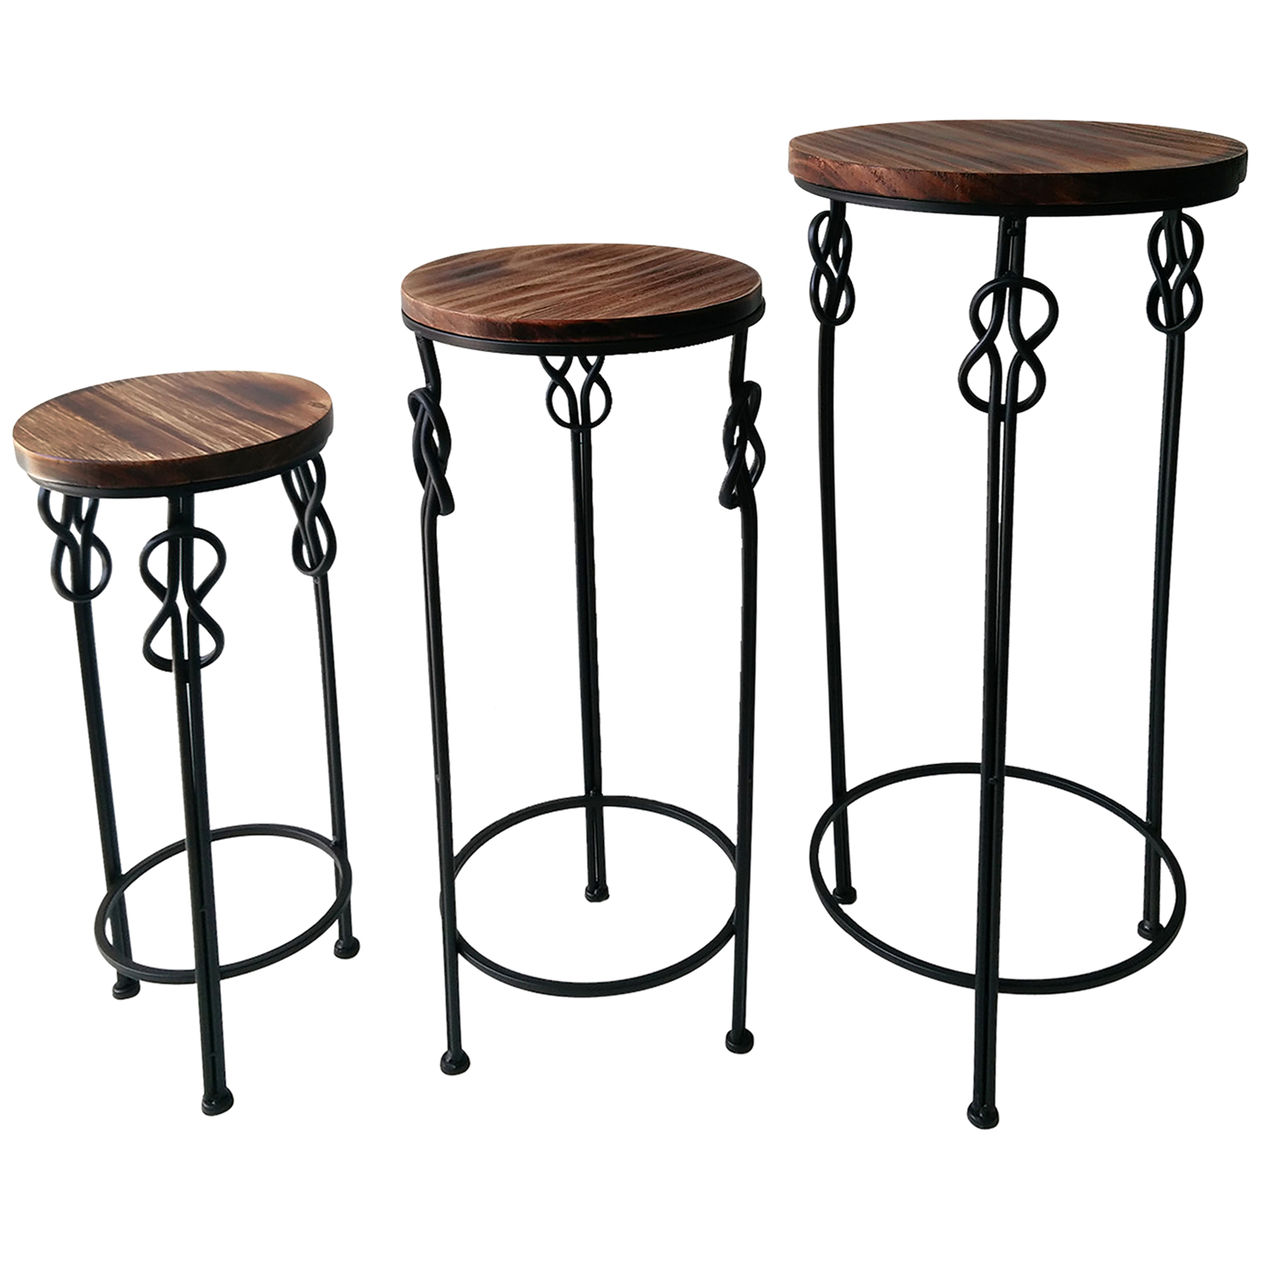 small round wood steel knot accent table home under amp retro bedroom furniture usb end lucite console inch wide skinny side between two chairs wicker outdoor coffee pier one